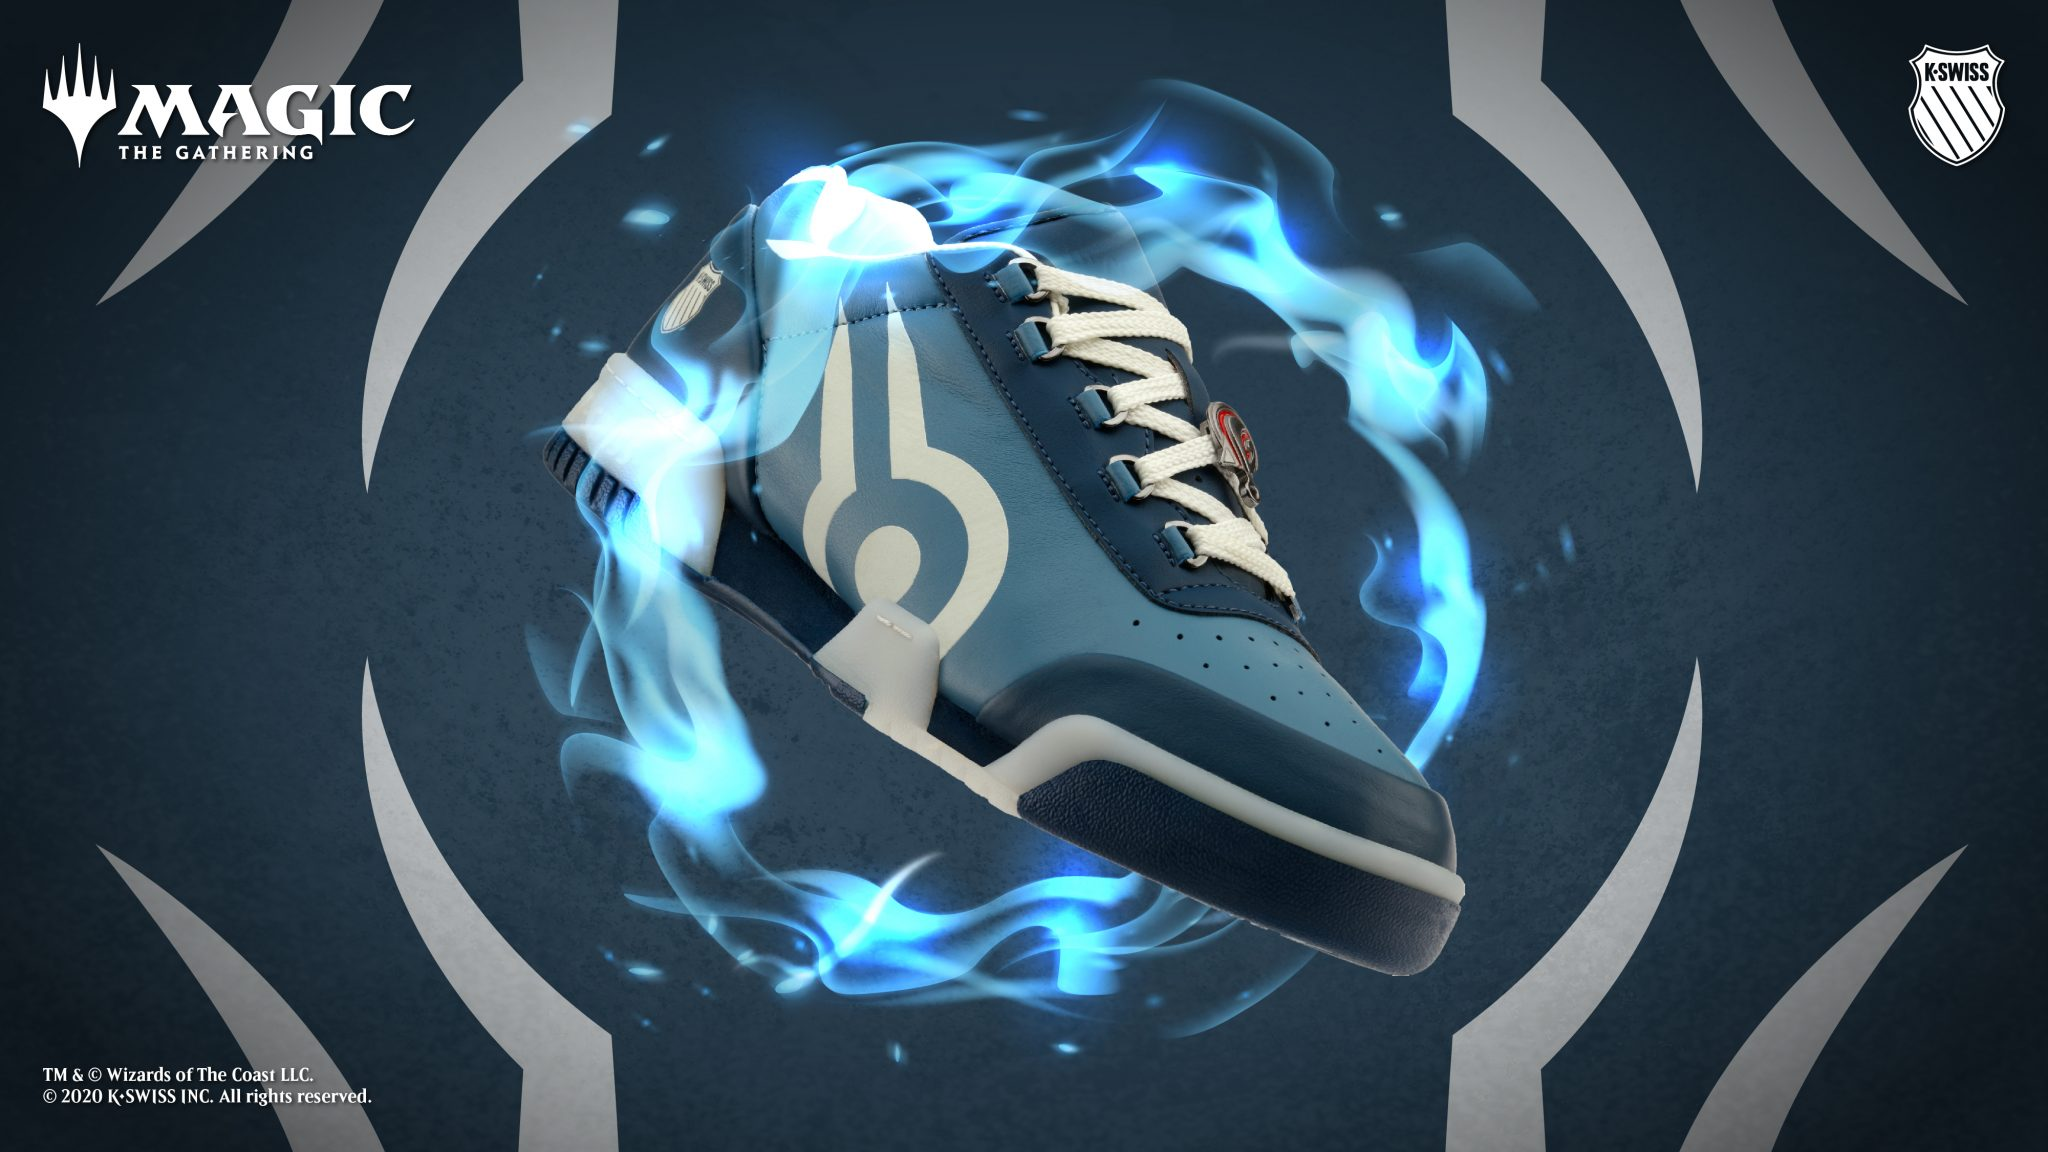 K-Swiss and Magic The Gathering Collaborate for a Uniquely Magical Reimagination of the Gstadd '86: Magic image